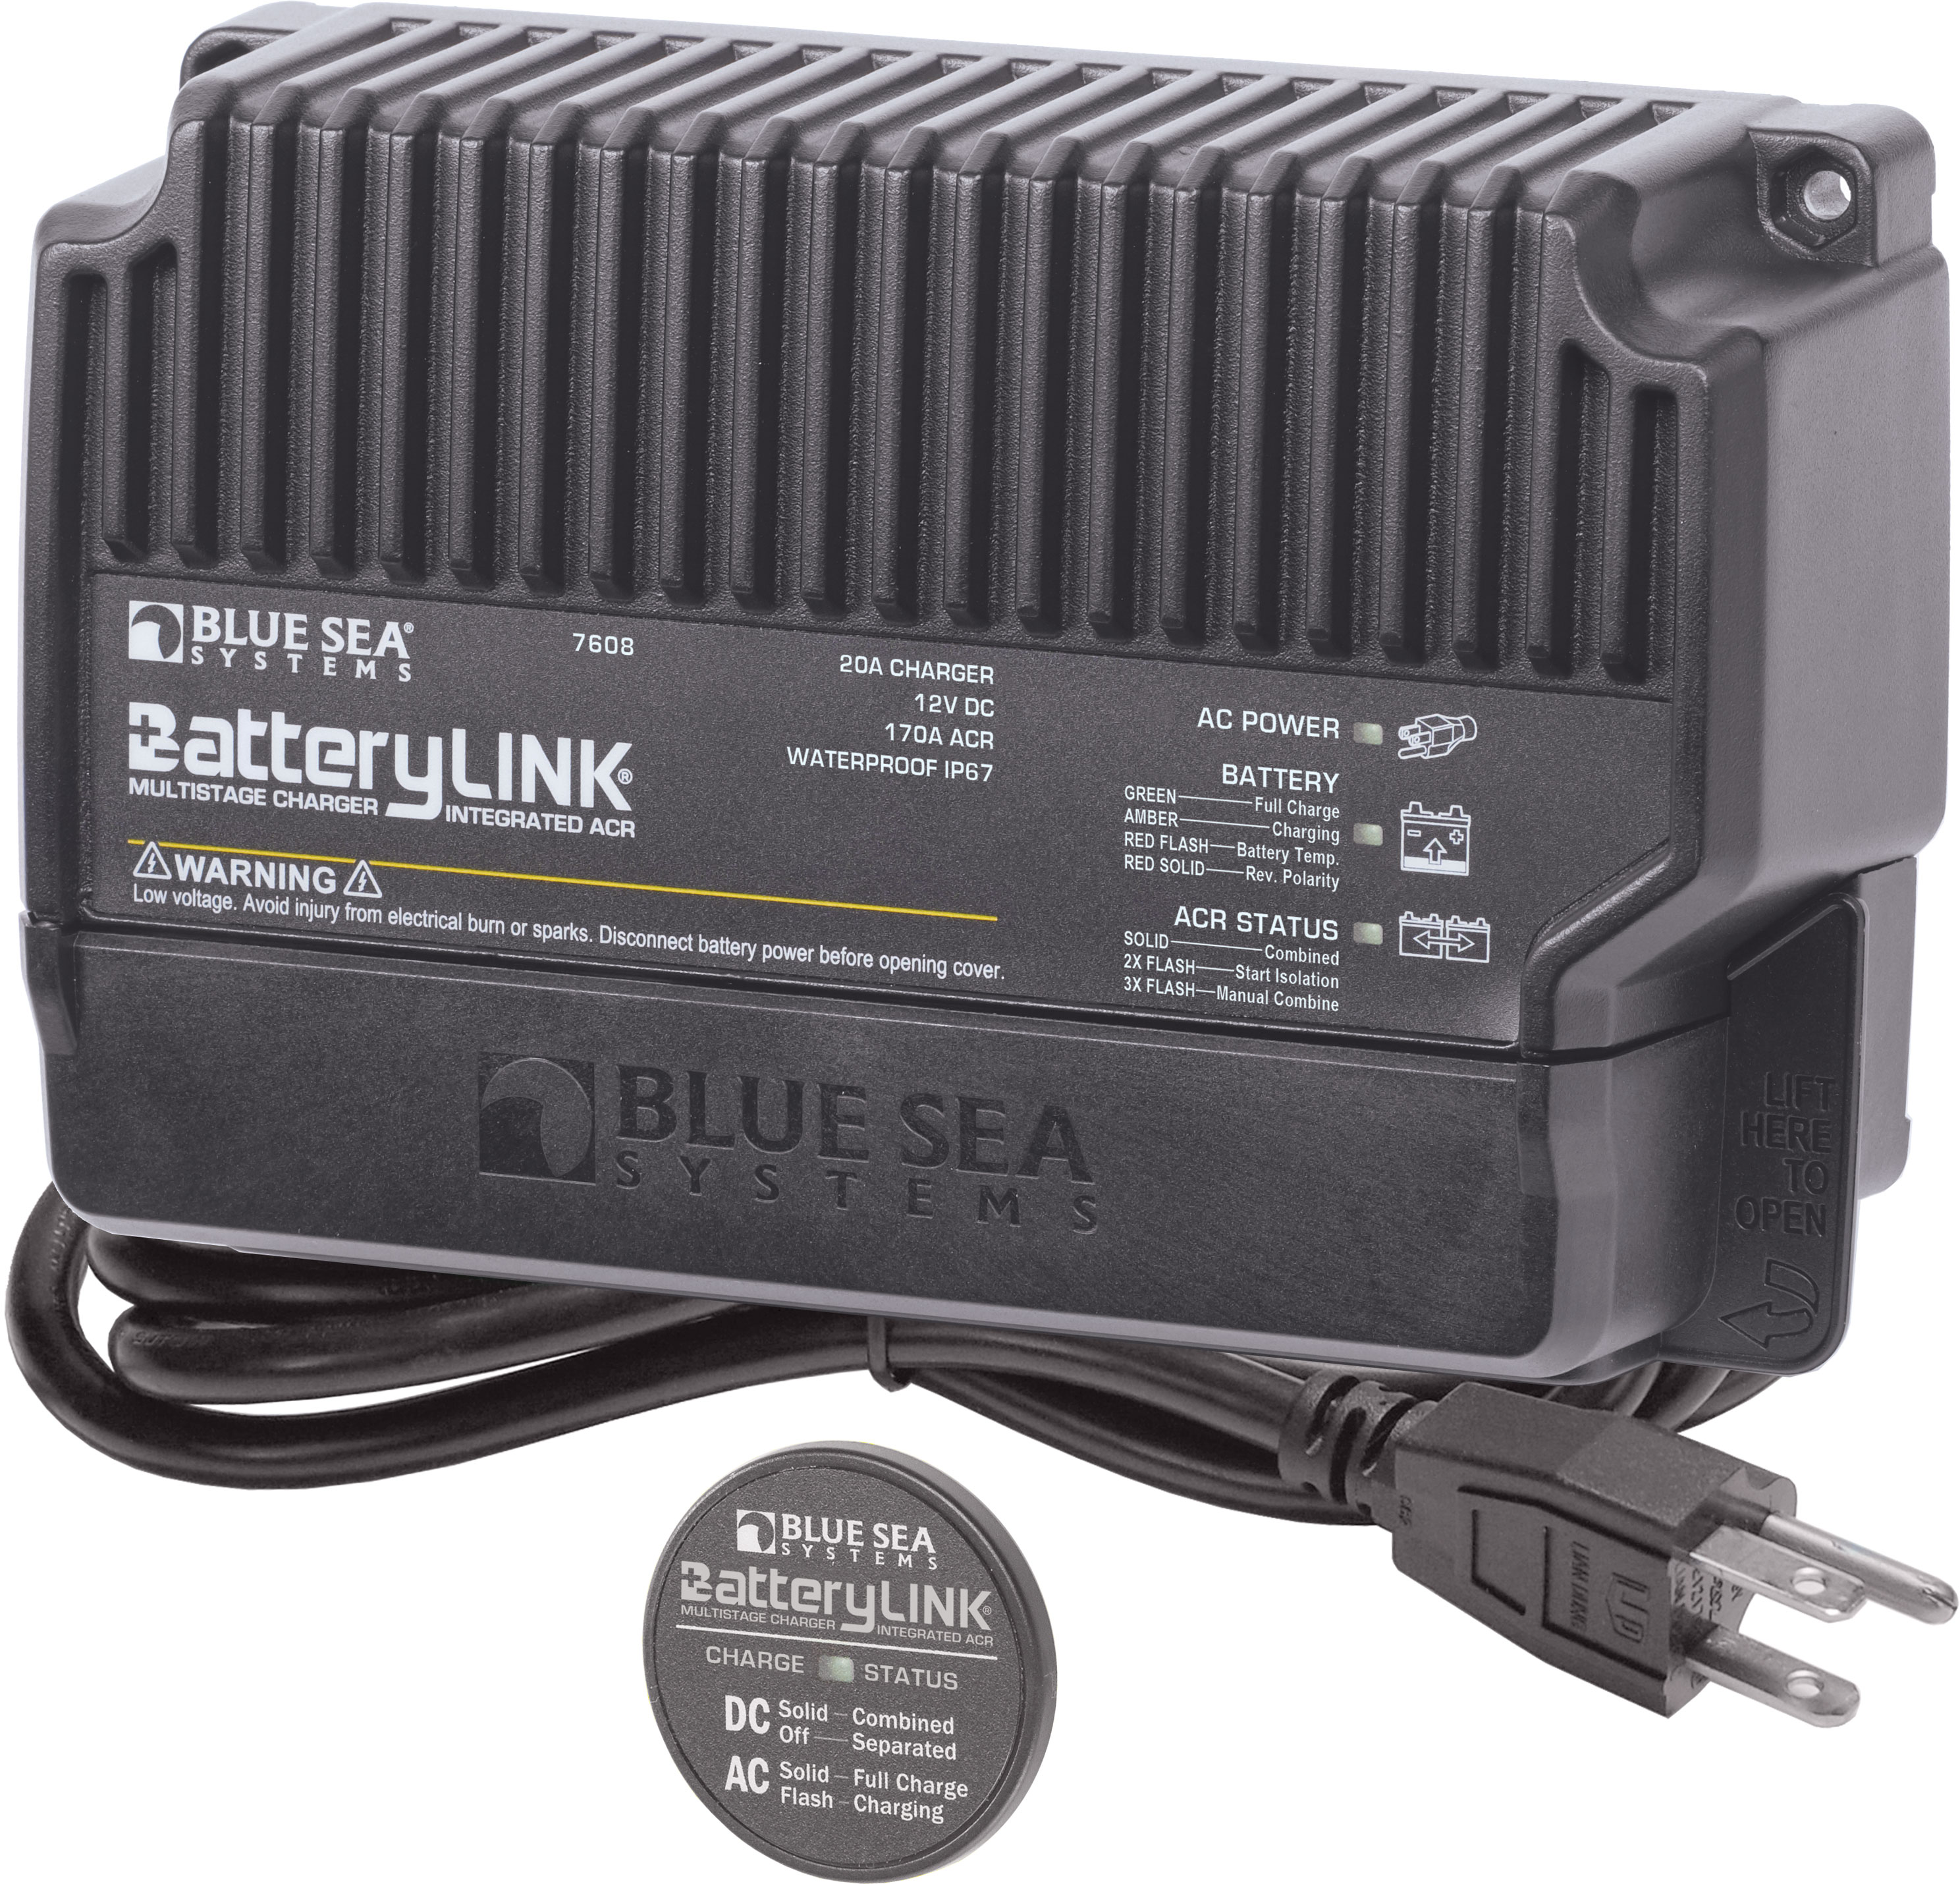 20a Batterylink Charger North America